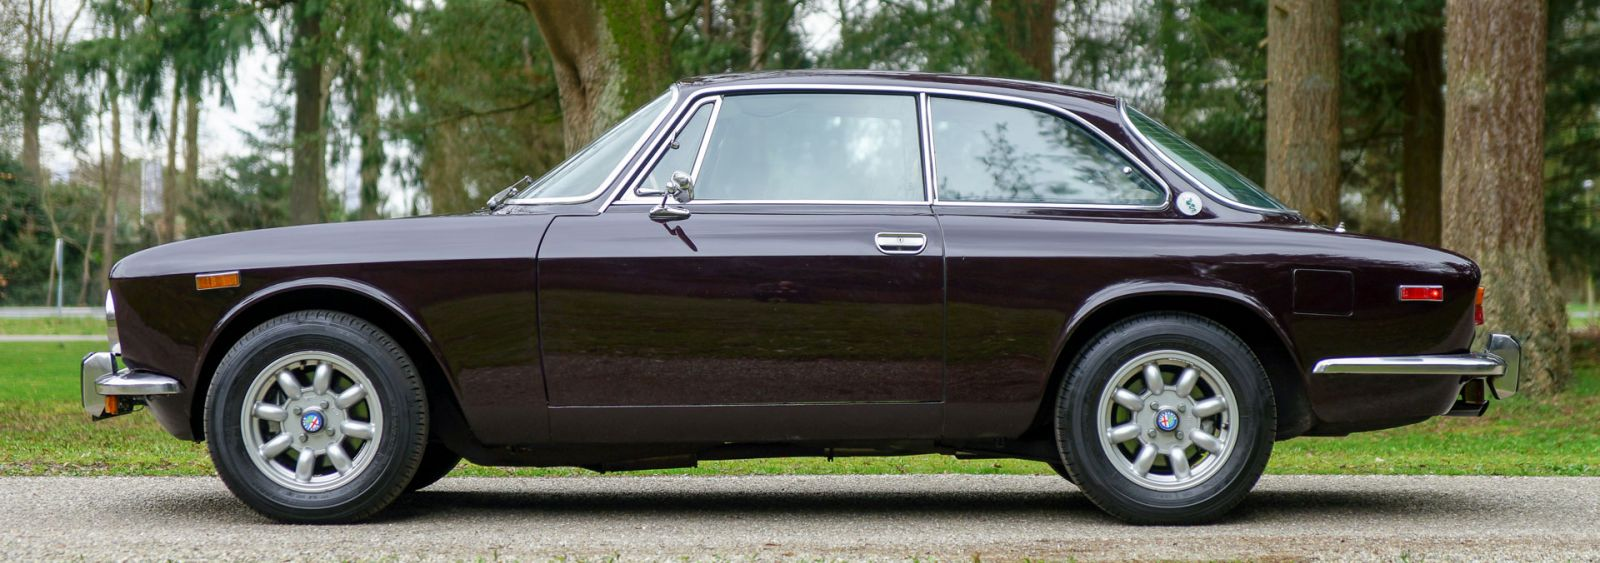 Alfa Romeo Giulia 2000 GTV, 1975 - Welcome to ClassiCarGarage